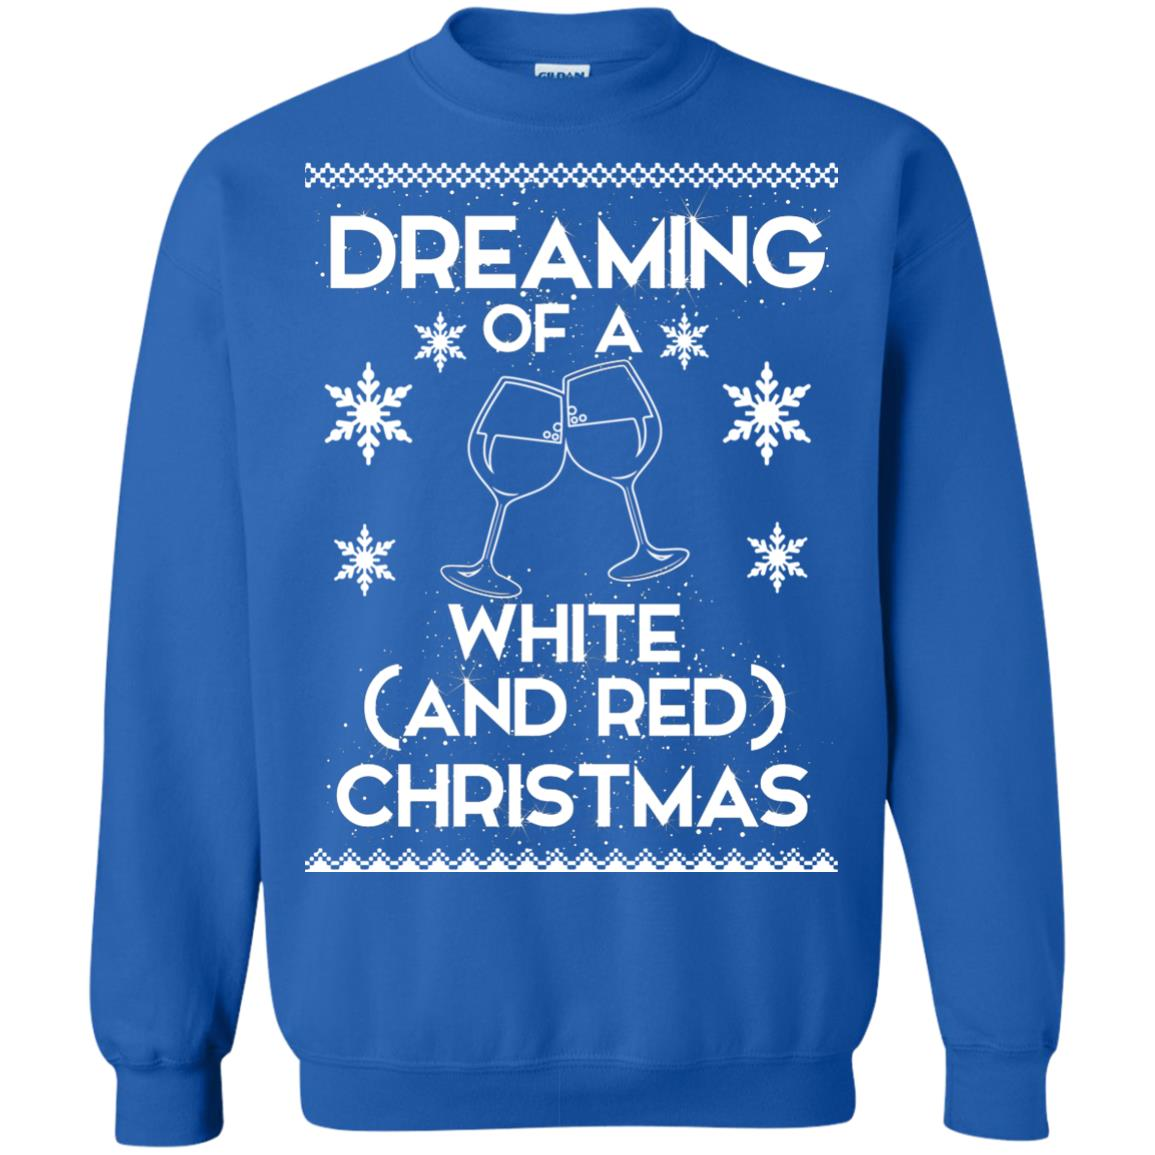 image 1766 - Dreaming of a White and Red Christmas Sweatshirt, Hoodie